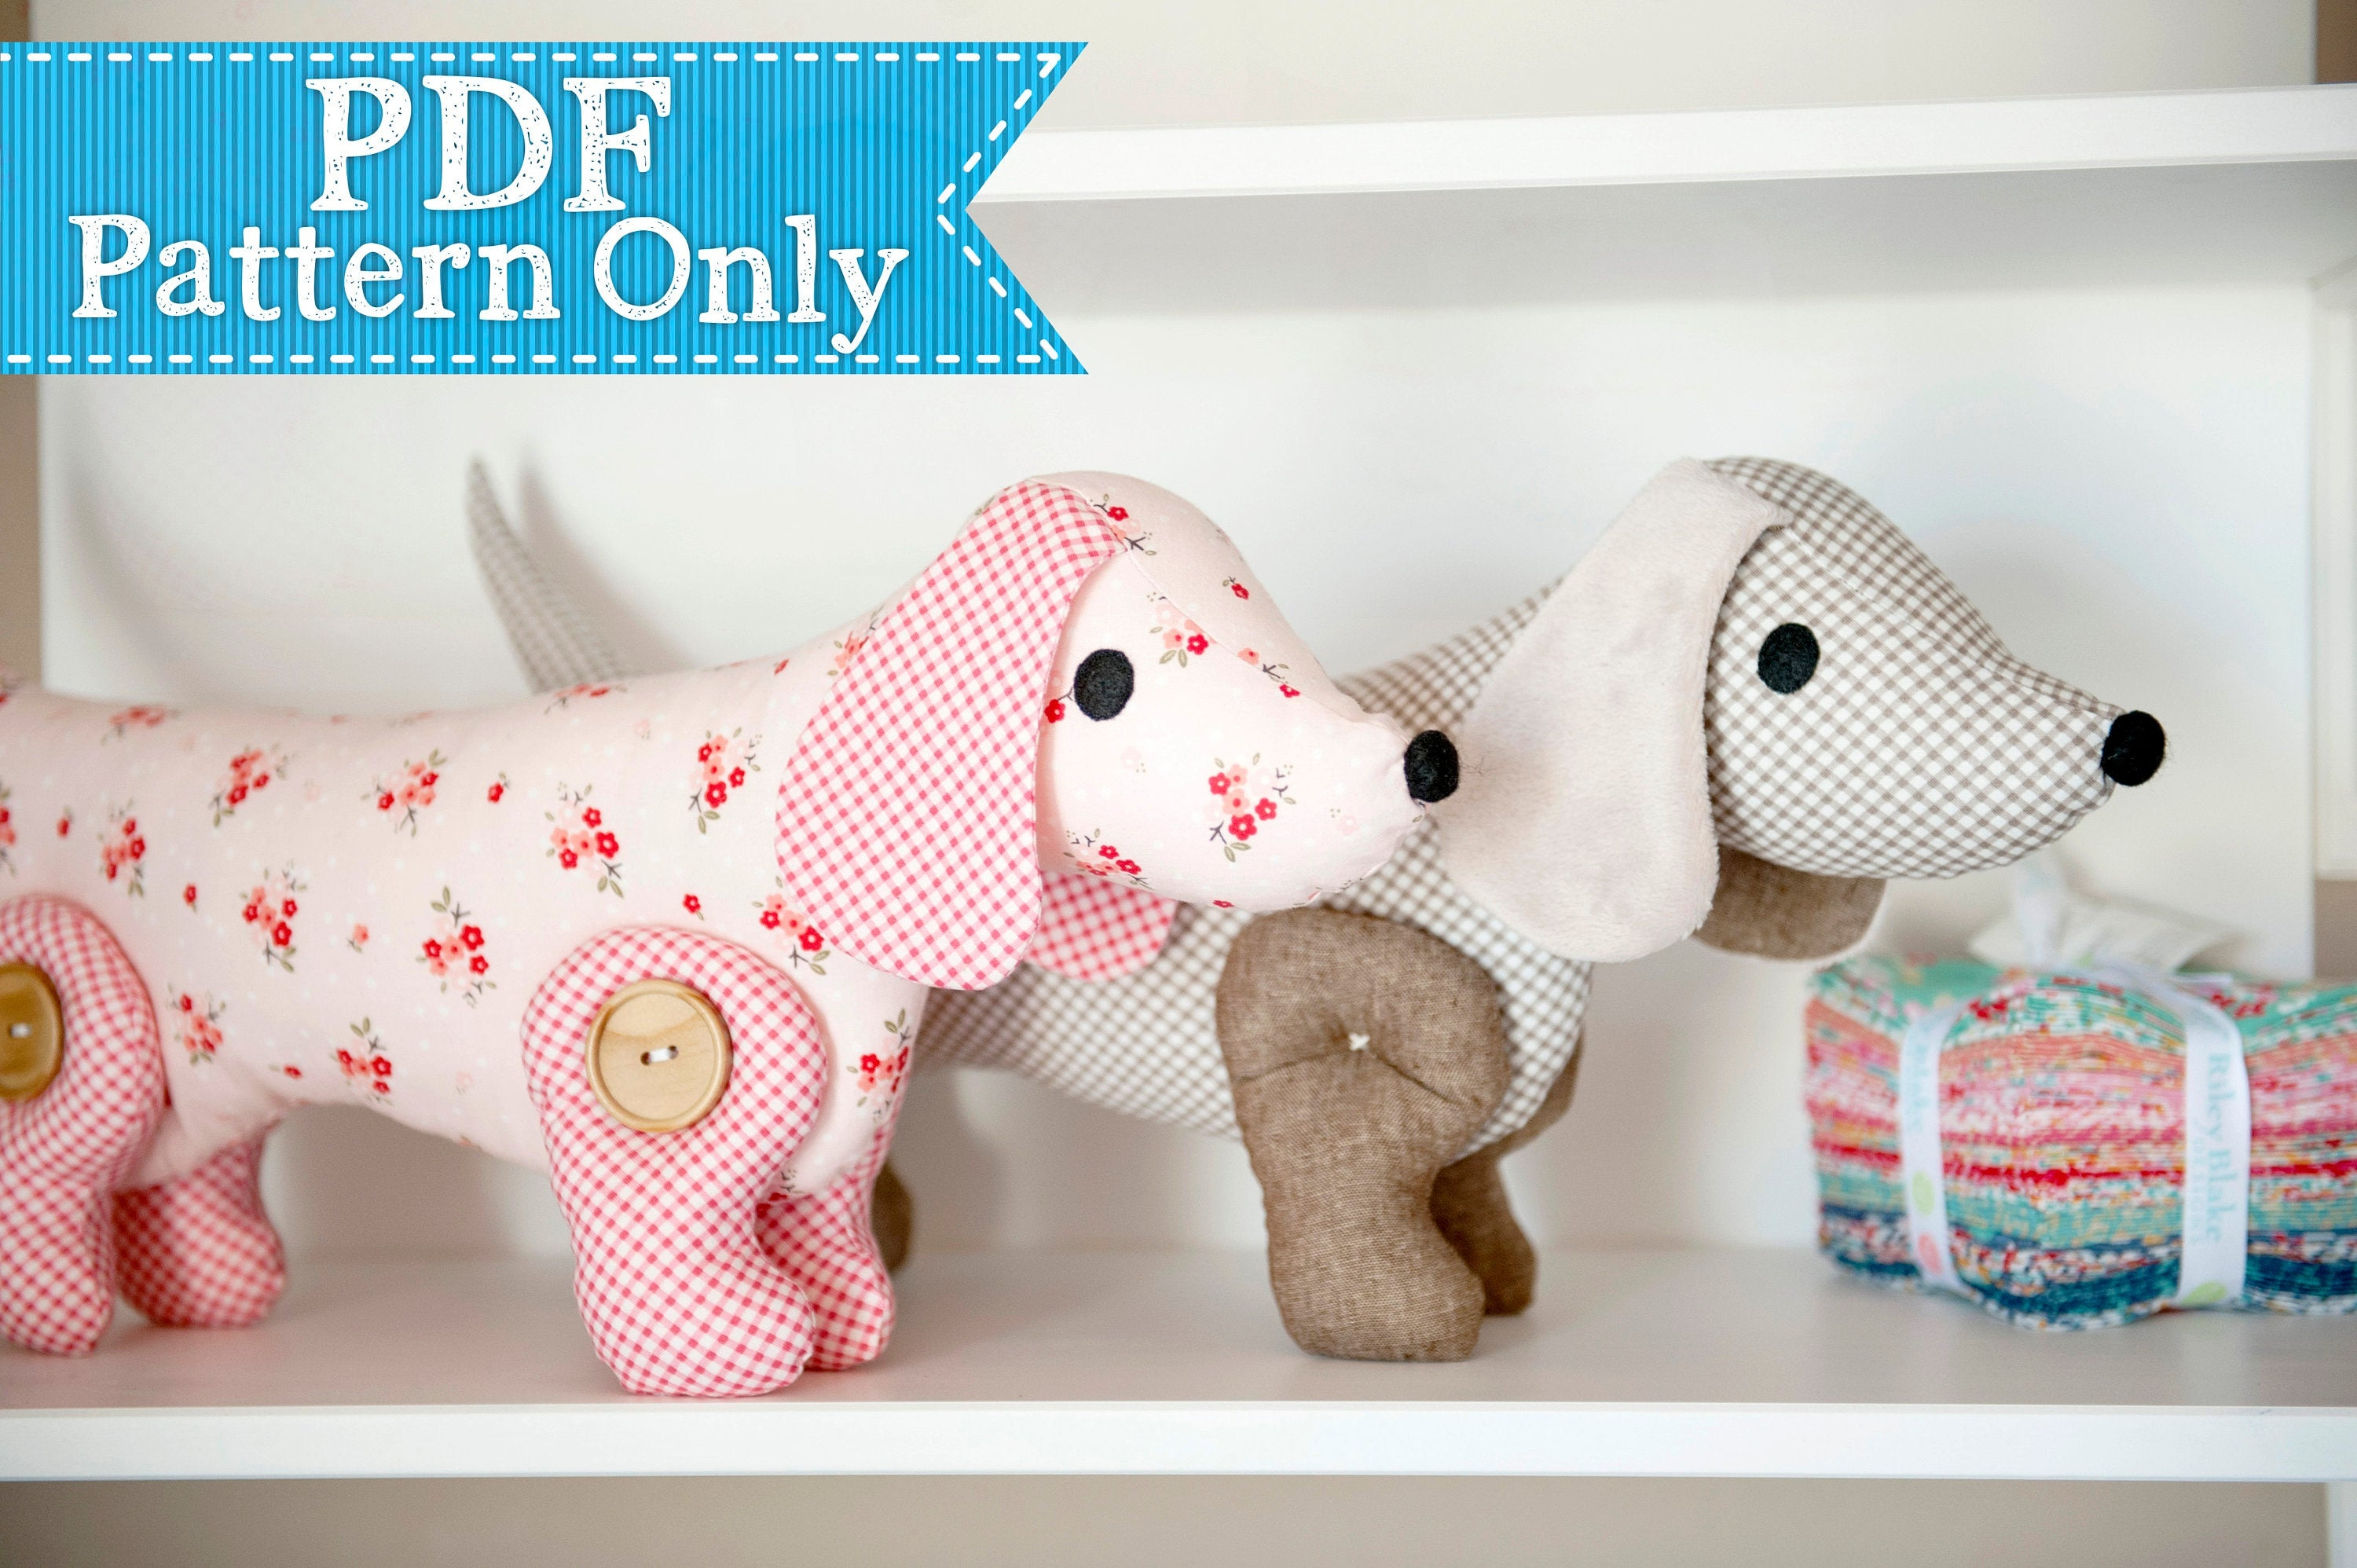 Sew-A-Long-Little-Doggy Dachshund Pdf Pattern Sewing Pdf | Etsy - Free Printable Dachshund Sewing Pattern